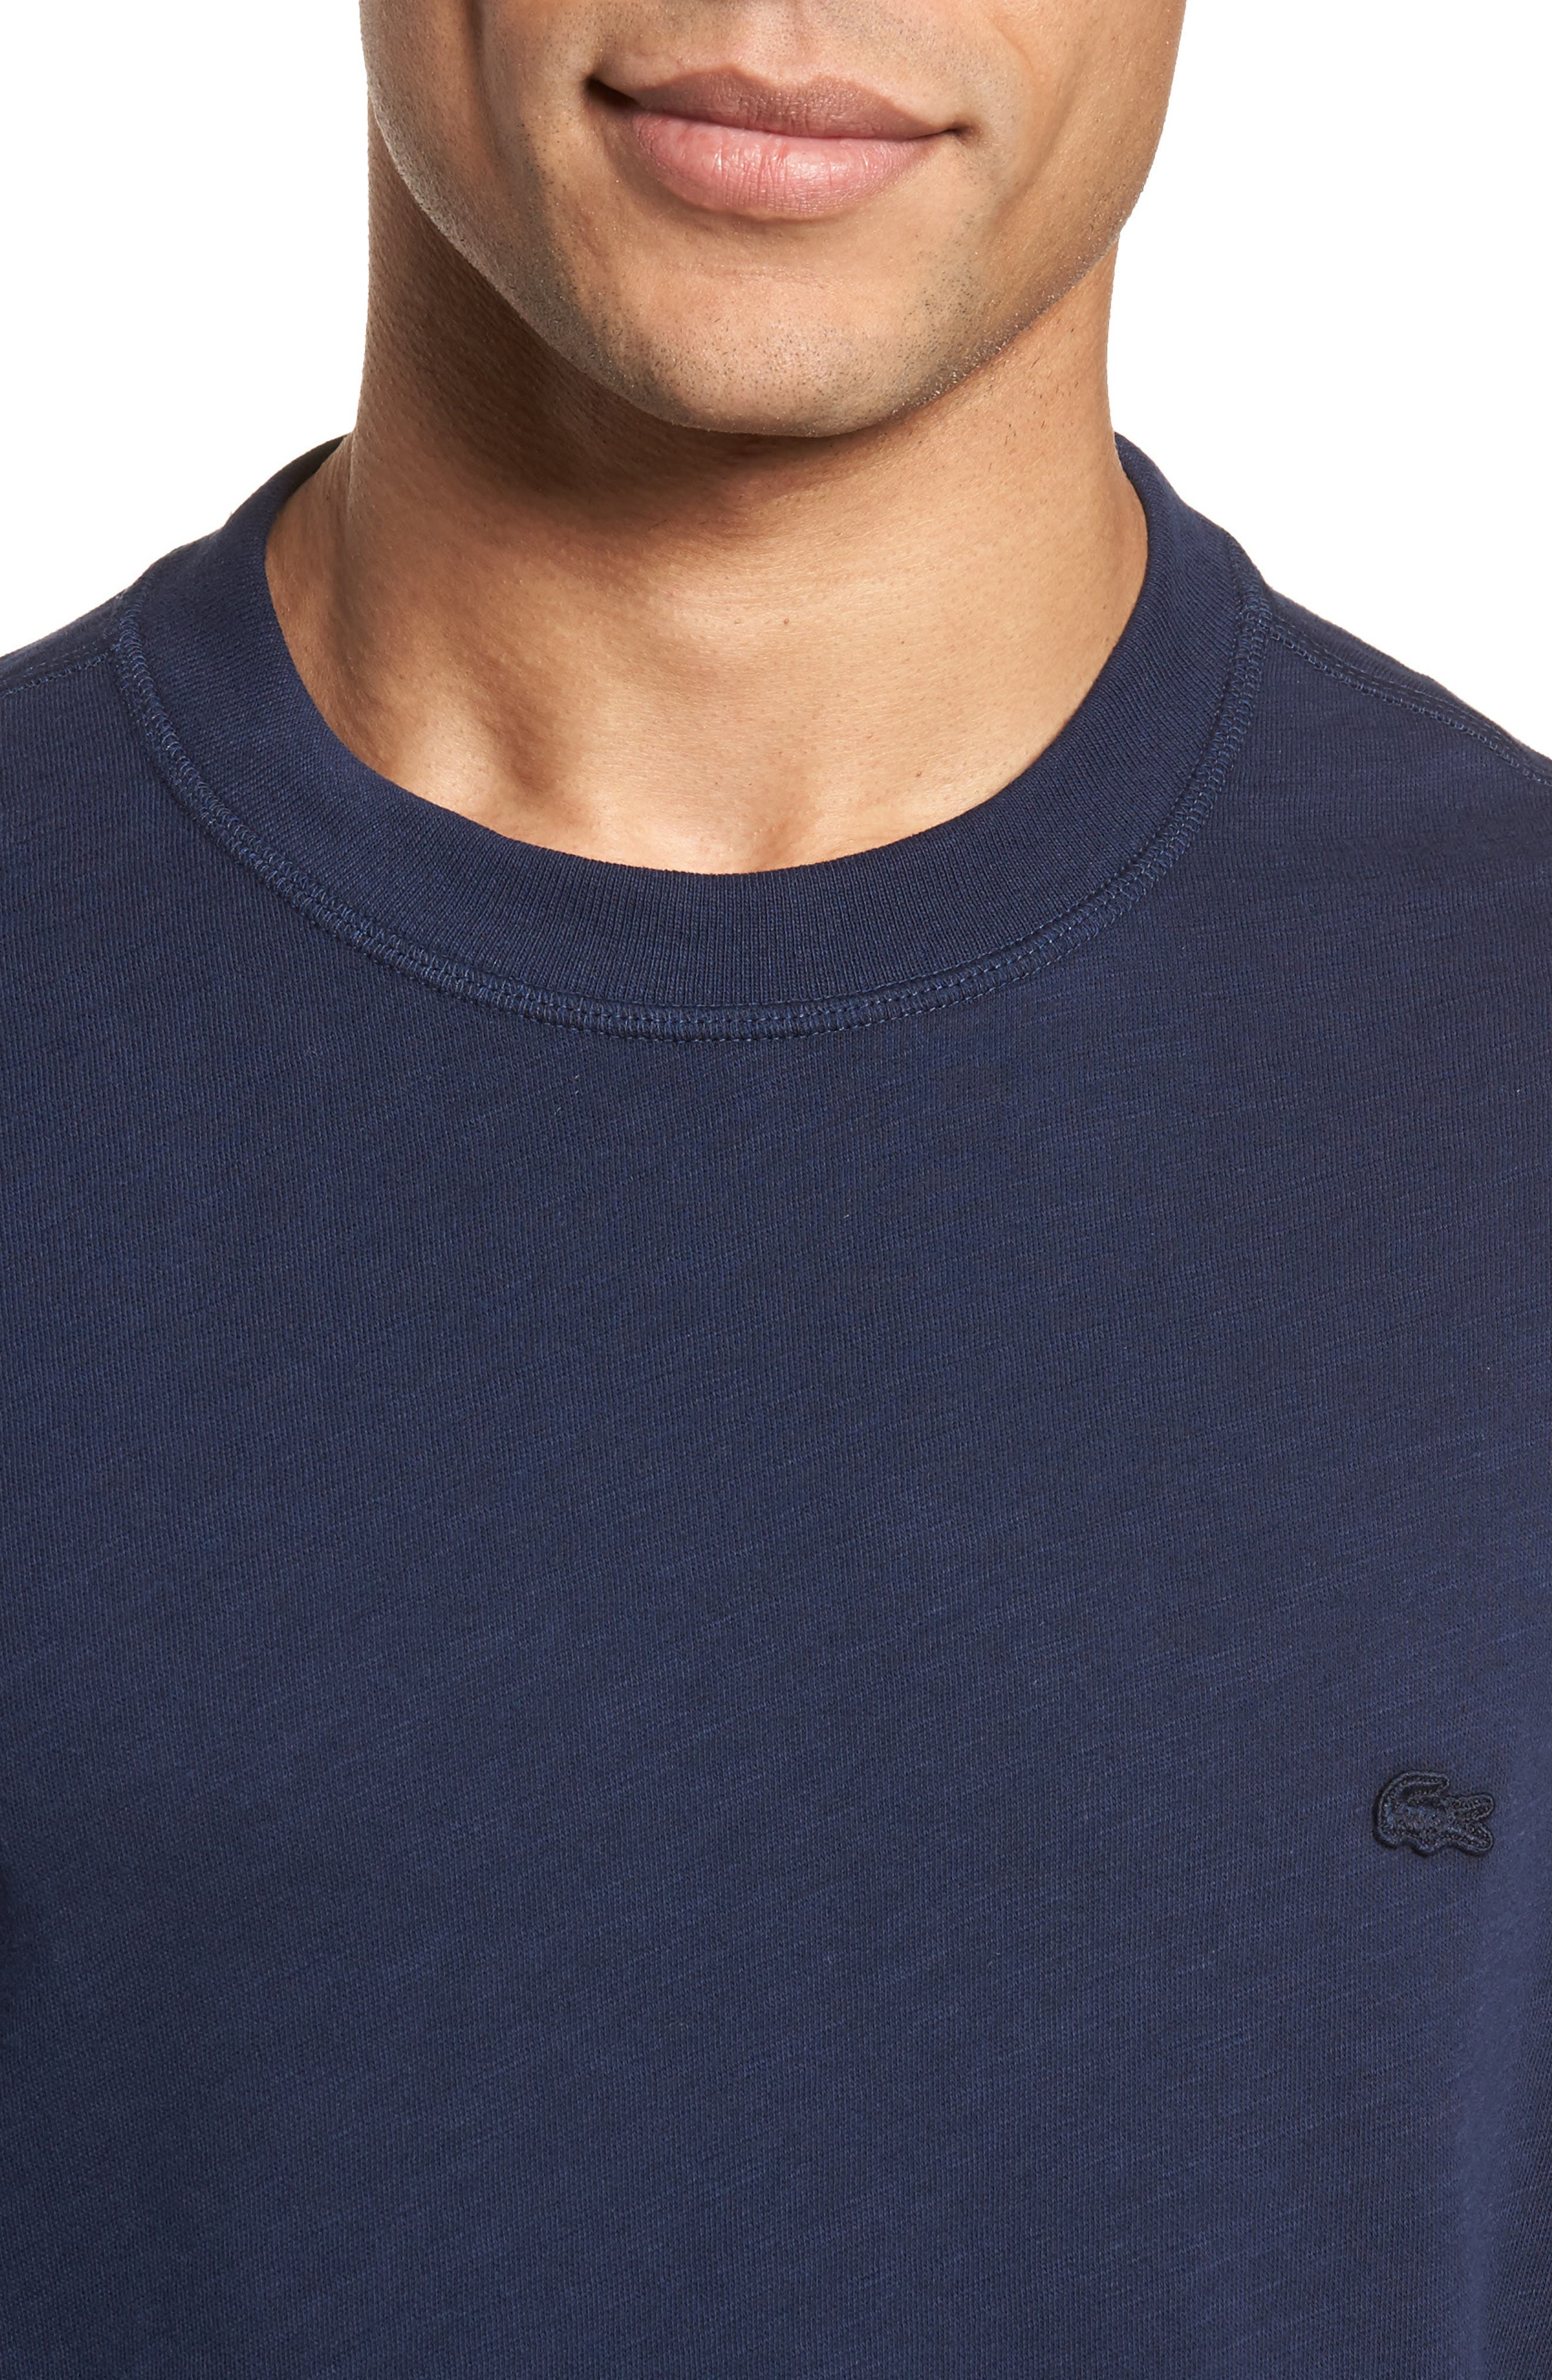 Slim Fit French Terry Sweatshirt,                             Alternate thumbnail 4, color,                             Navy Blue